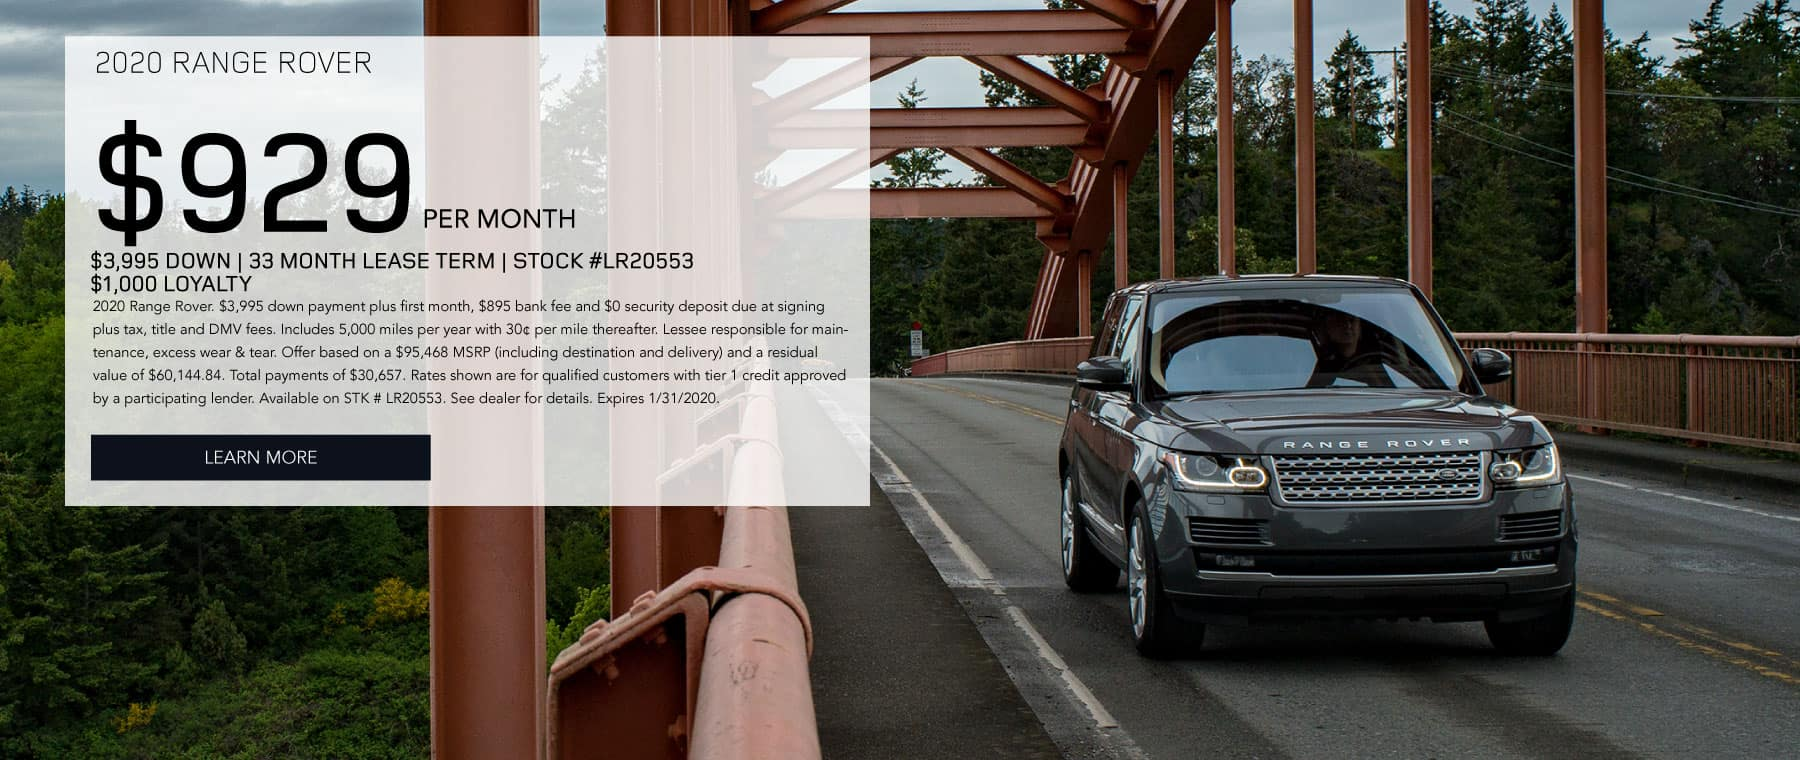 2020 RANGE ROVER $929 PER MONTH $3,995 DOWN 33 MONTH LEASE TERM STOCK #LR20553 $1,000 LOYALTY 2020 Range Rover. $3,995 down payment plus first month, $895 bank fee and $0 security deposit due at signing plus tax, title and DMV fees. Includes 5,000 miles per year with 30¢ per mile thereafter. Lessee responsible for maintenance, excess wear & tear. Offer based on a $95,468 MSRP (including destination and delivery) and a residual value of $60,144.84. Total payments of $30,657. Rates shown are for qualified customers with tier 1 credit approved by a participating lender. Available on STK # LR20553. See dealer for details. Expires 1/31/2020. Click to learn more. Dark Grey Range Rover on Bridge with trees in the background.